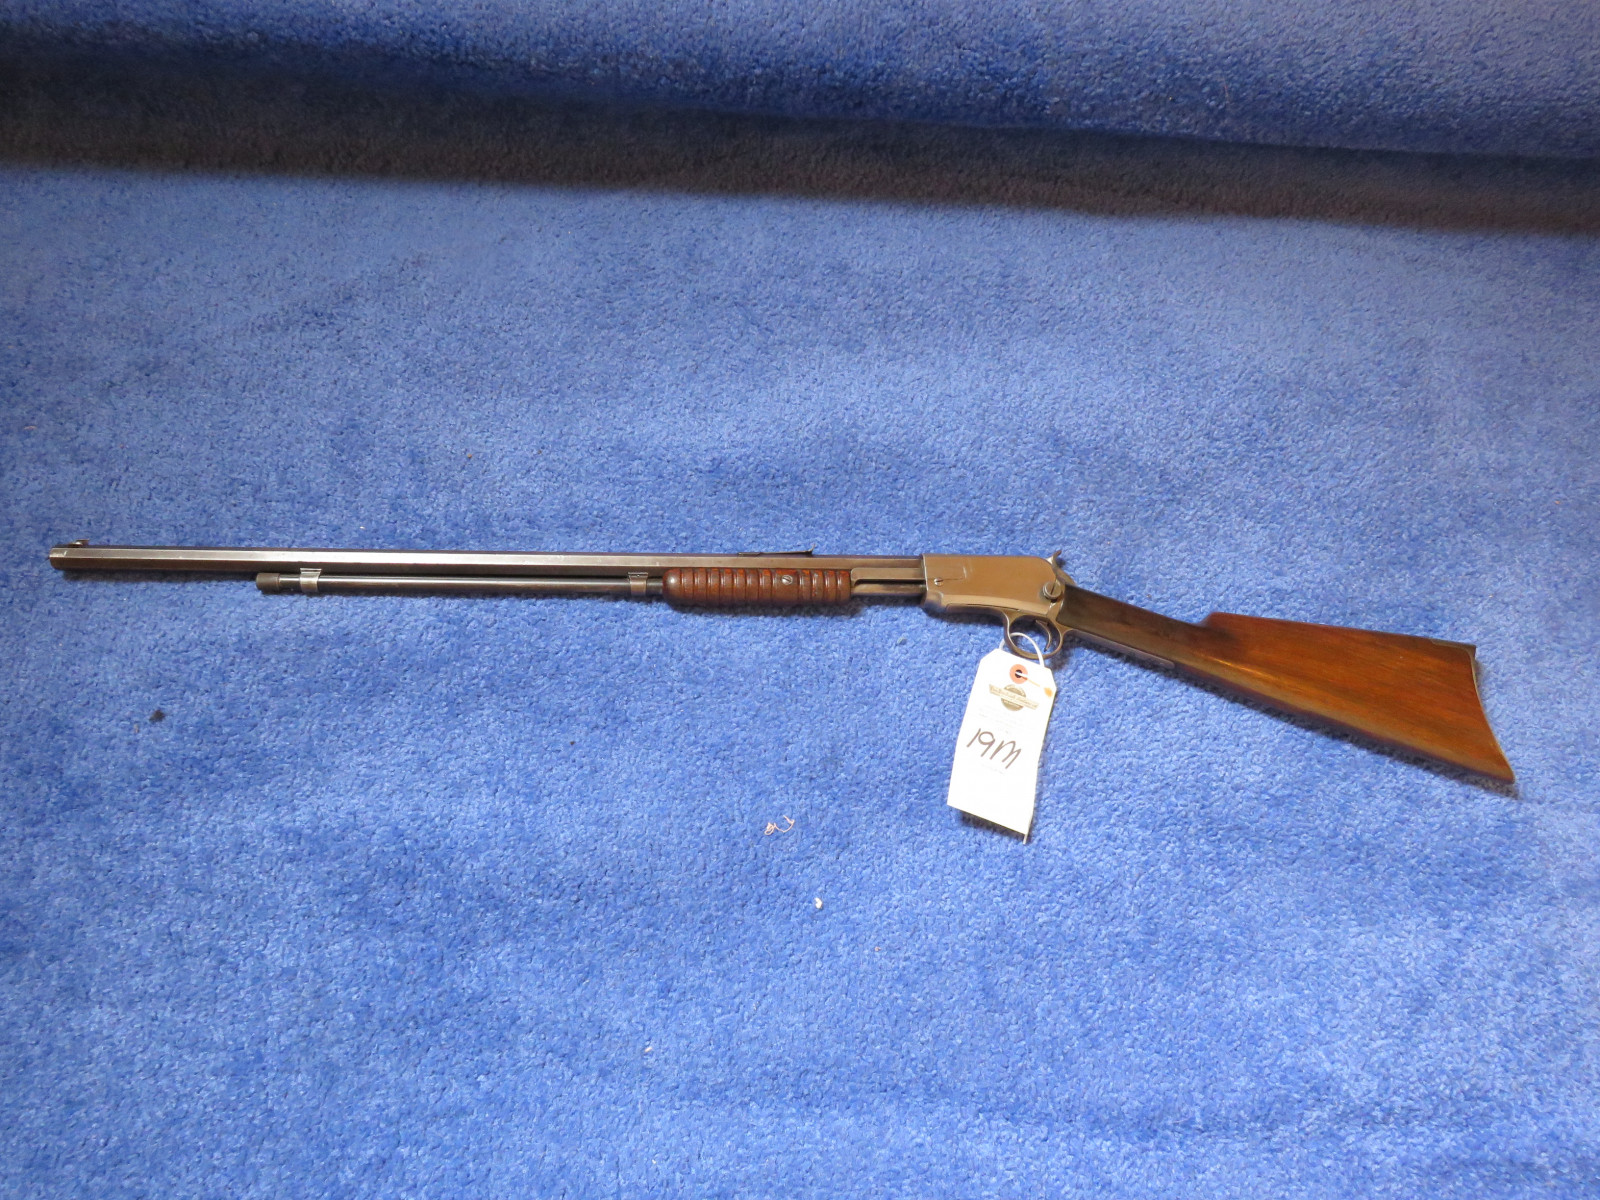 Winchester Model 1890 .22 Rifle - Image 1